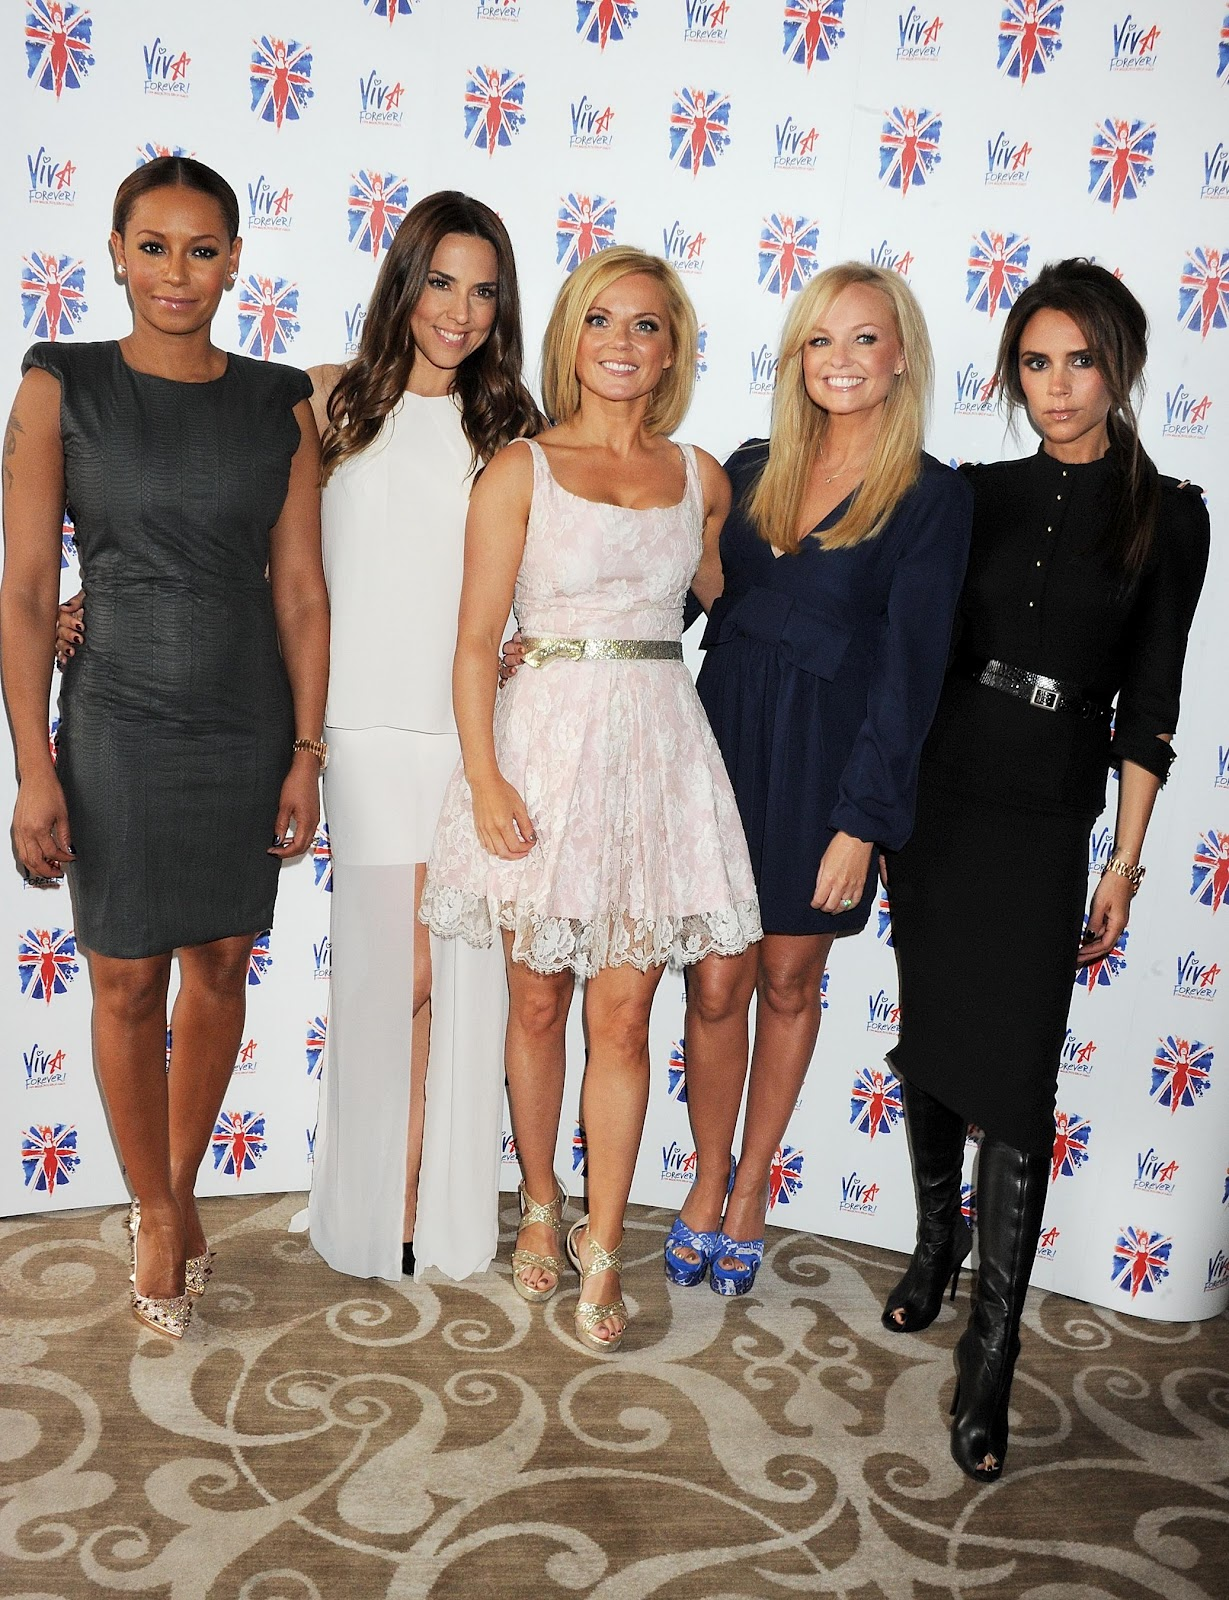 Victoria Beckham Melanie Brown Chisholm Geri Halliwell And